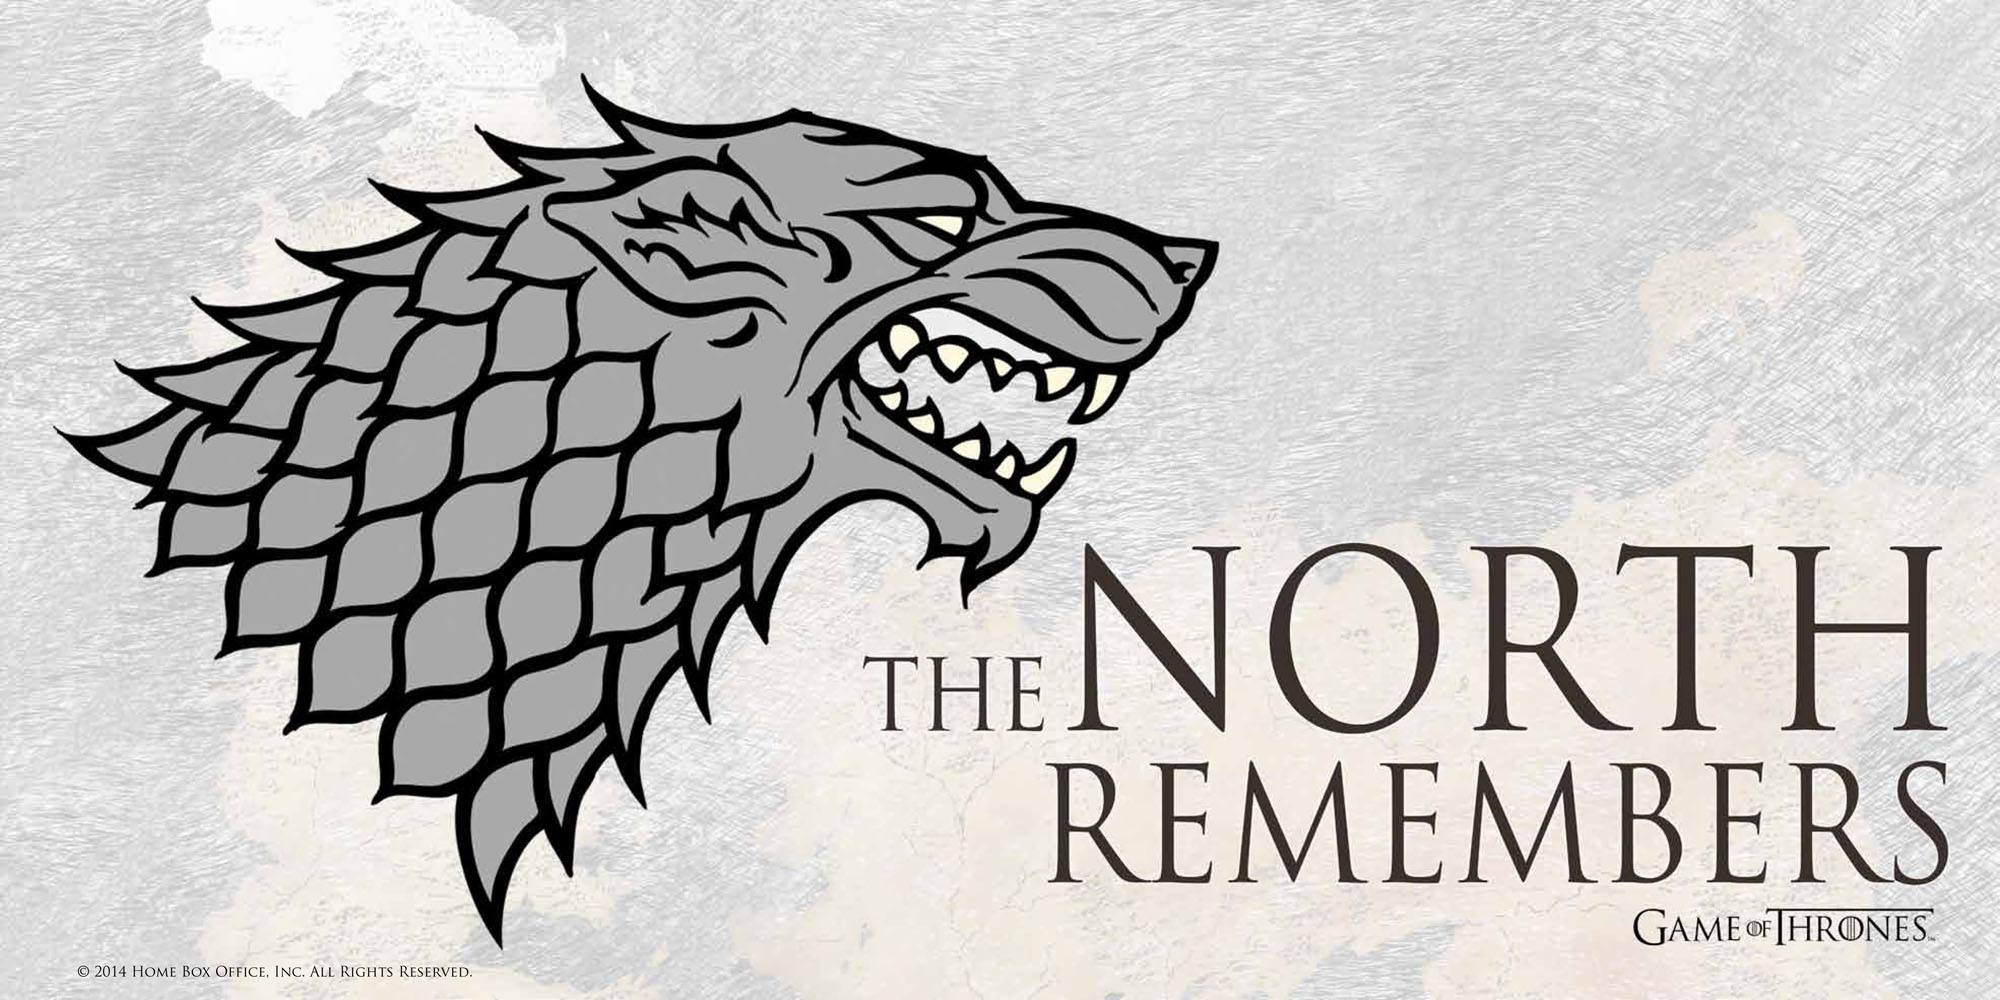 Game Of Thrones Glass Poster The North Remembers 50 x 25 cm